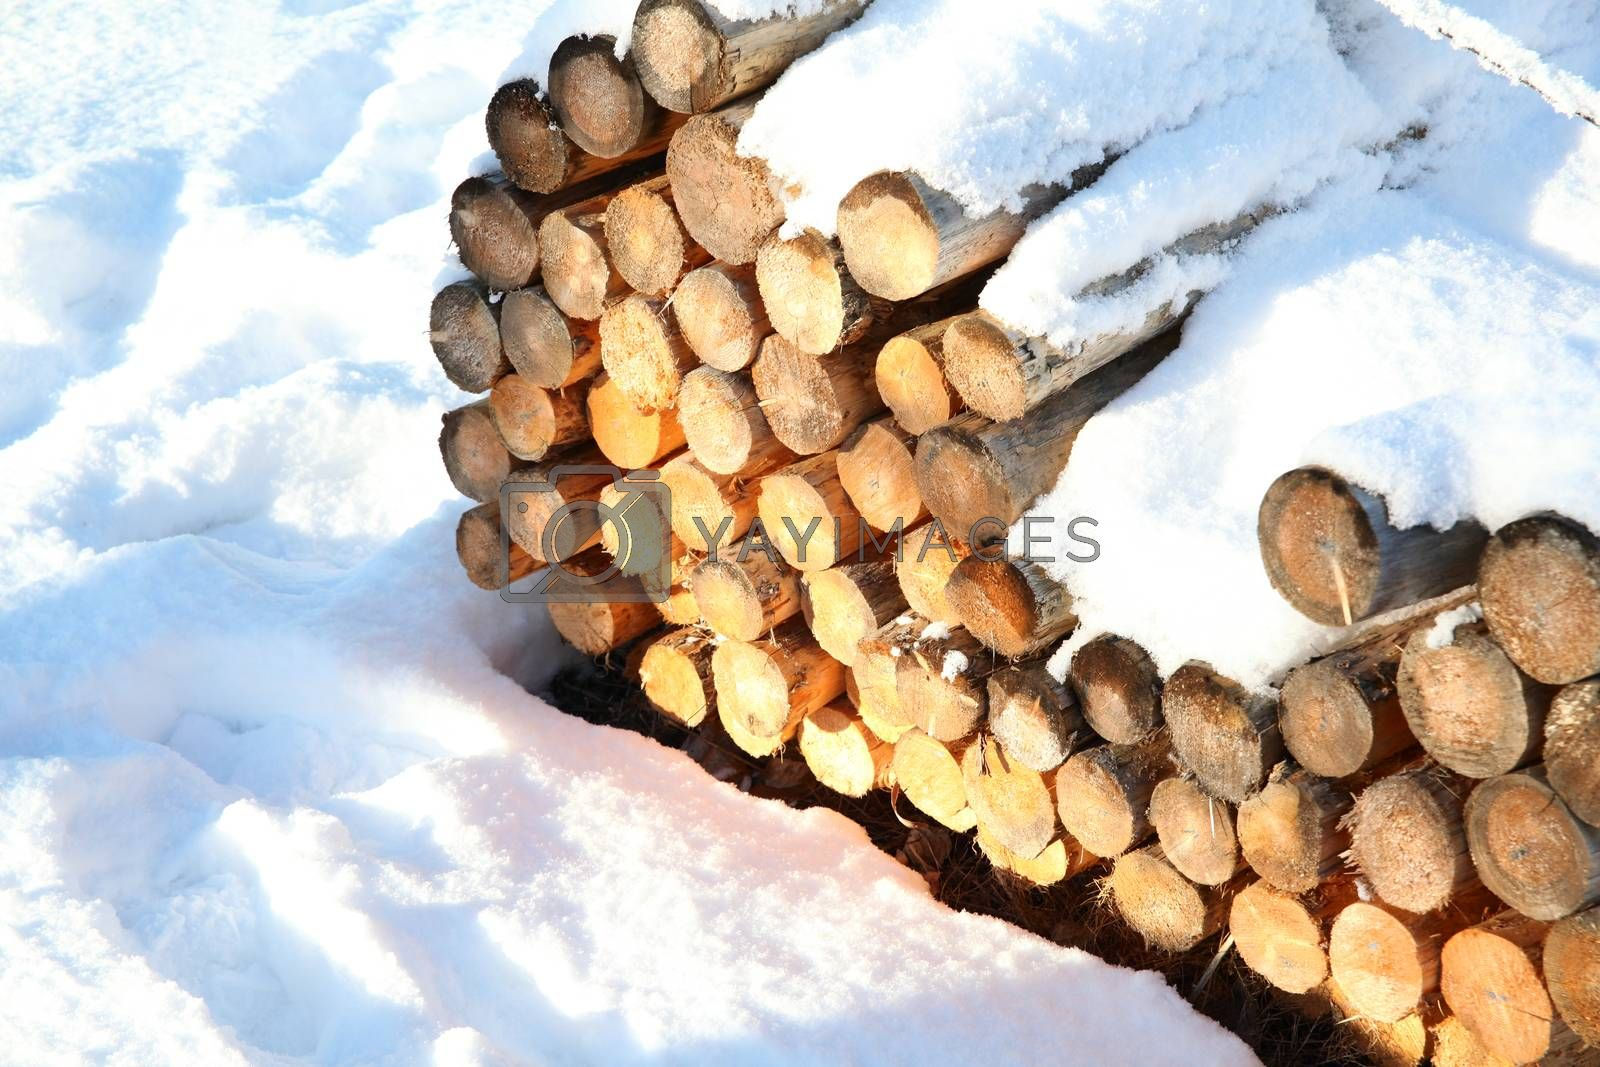 Wood bundle of rails covered in snow